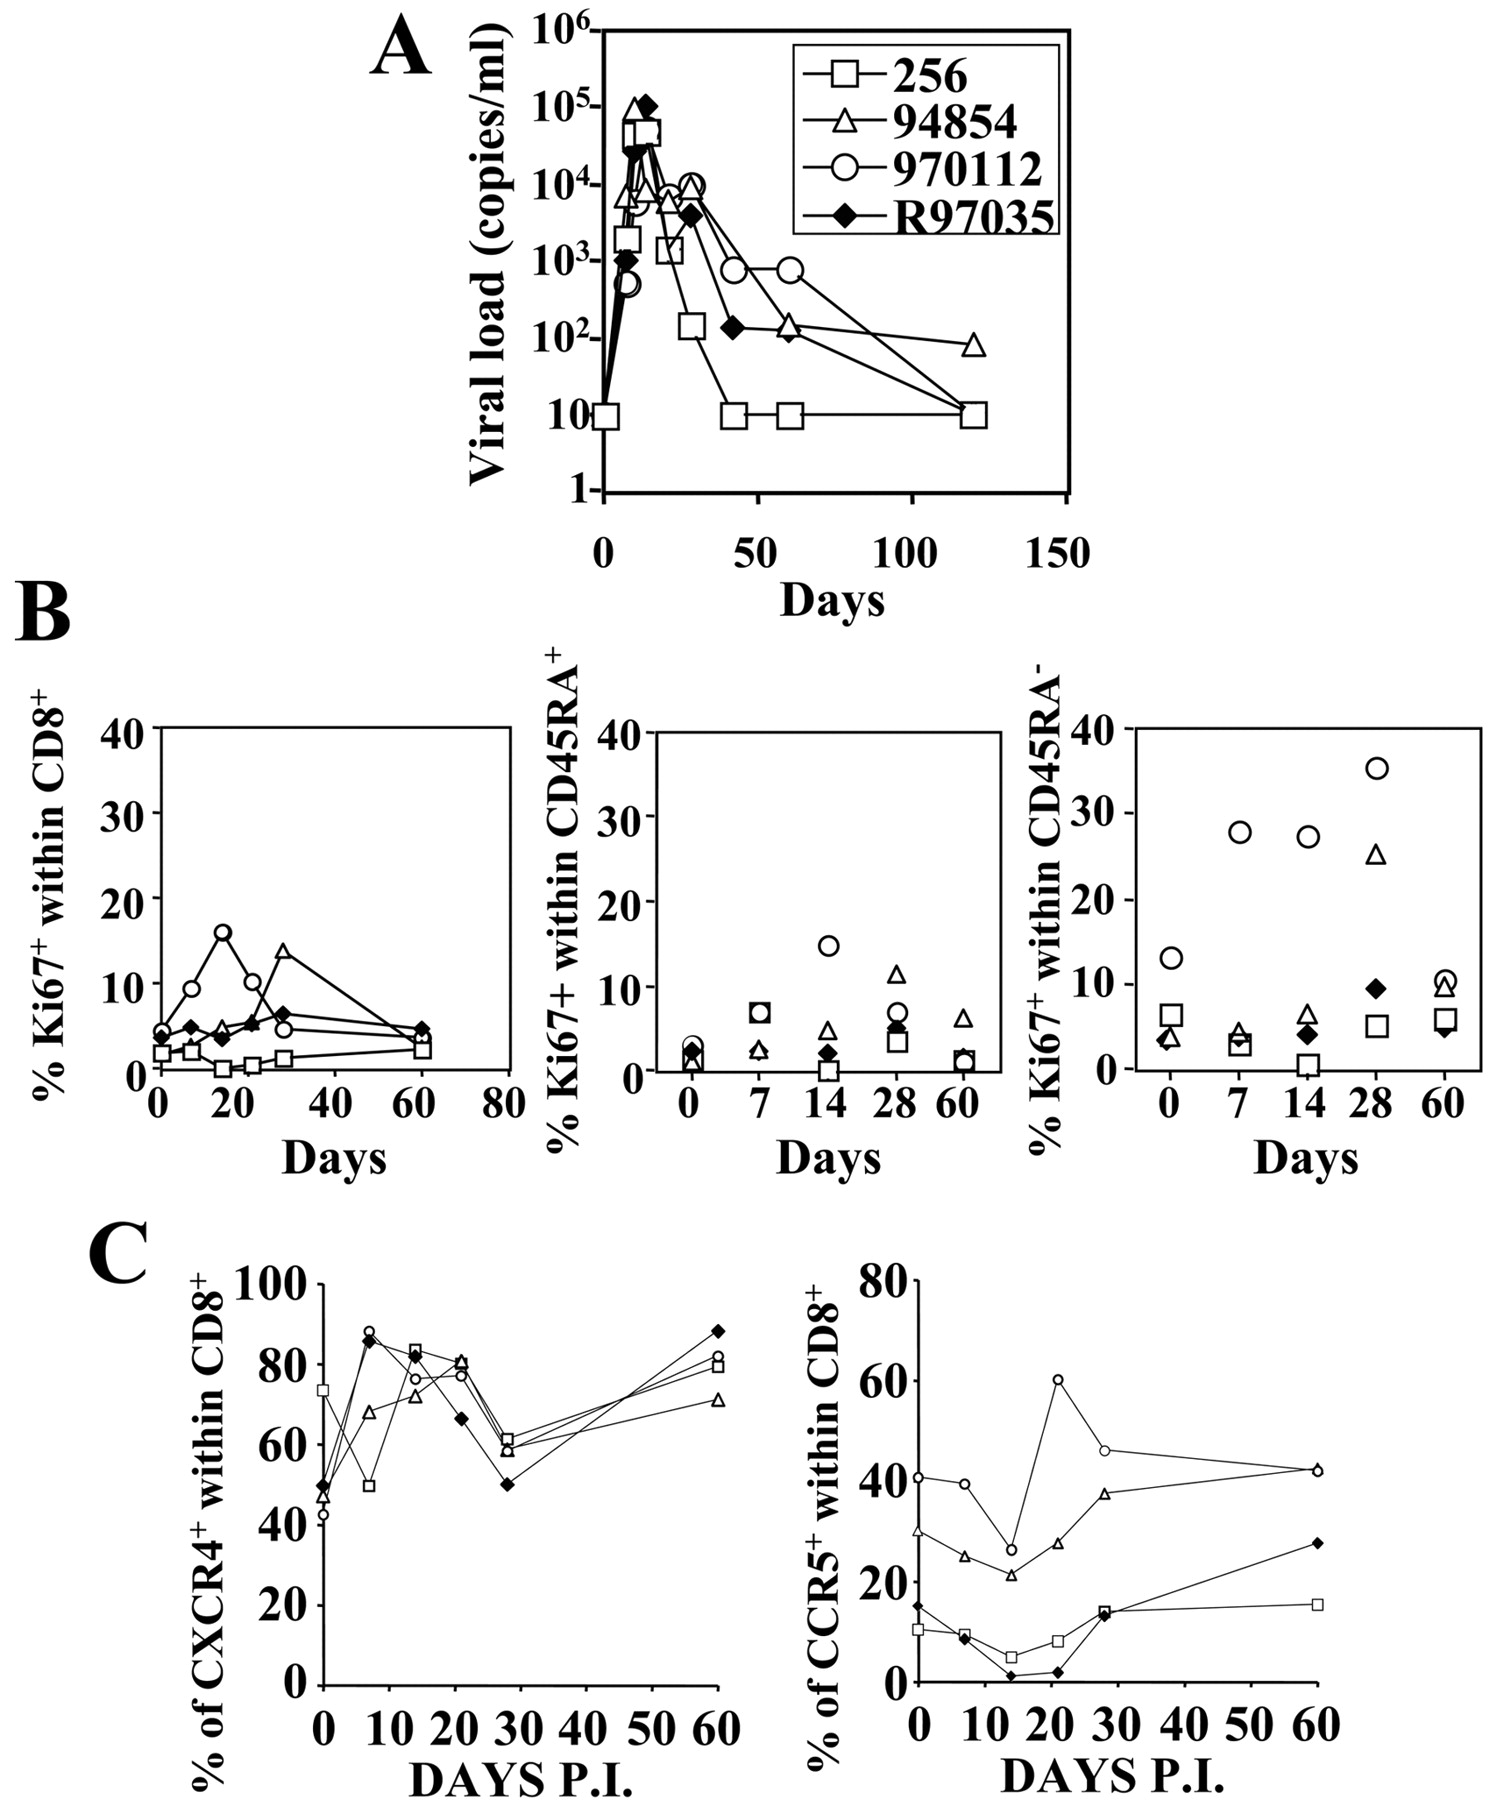 Cd8 t cell dynamics during primary simian immunodeficiency virus download figure fandeluxe Gallery